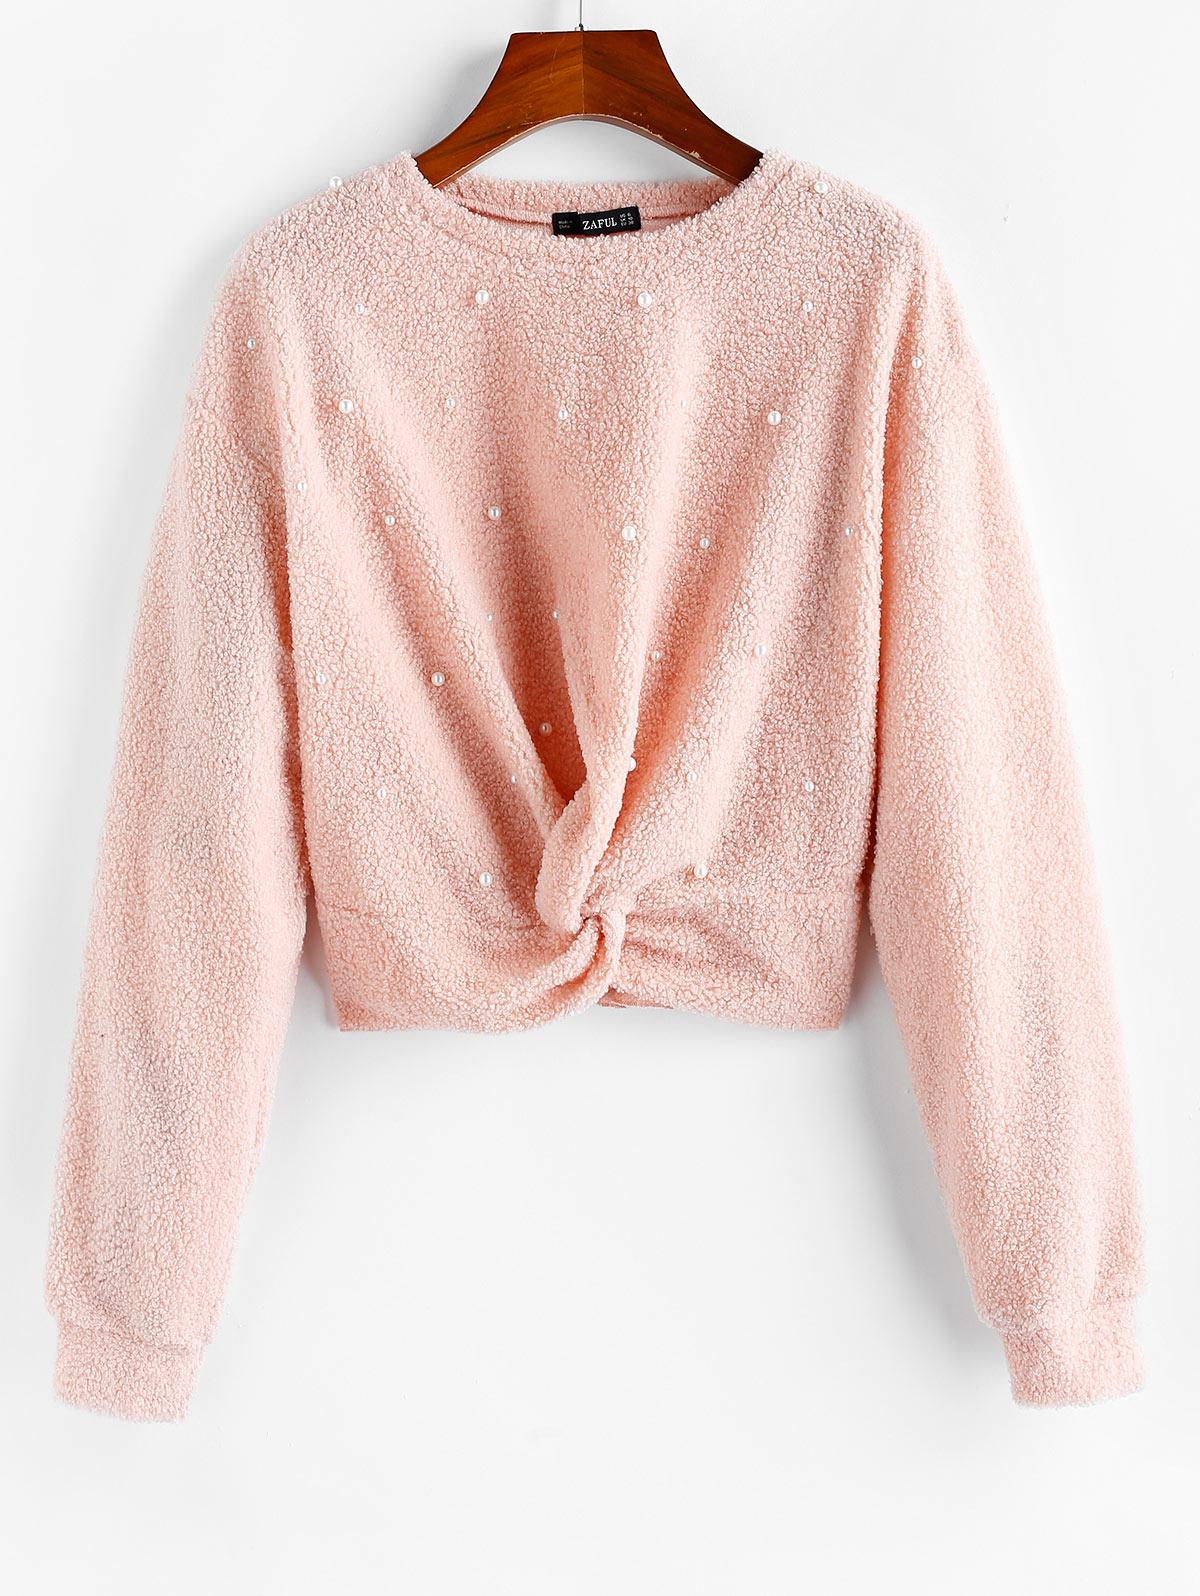 ZAFUL Beading Twist-front Teddy Sweatshirt